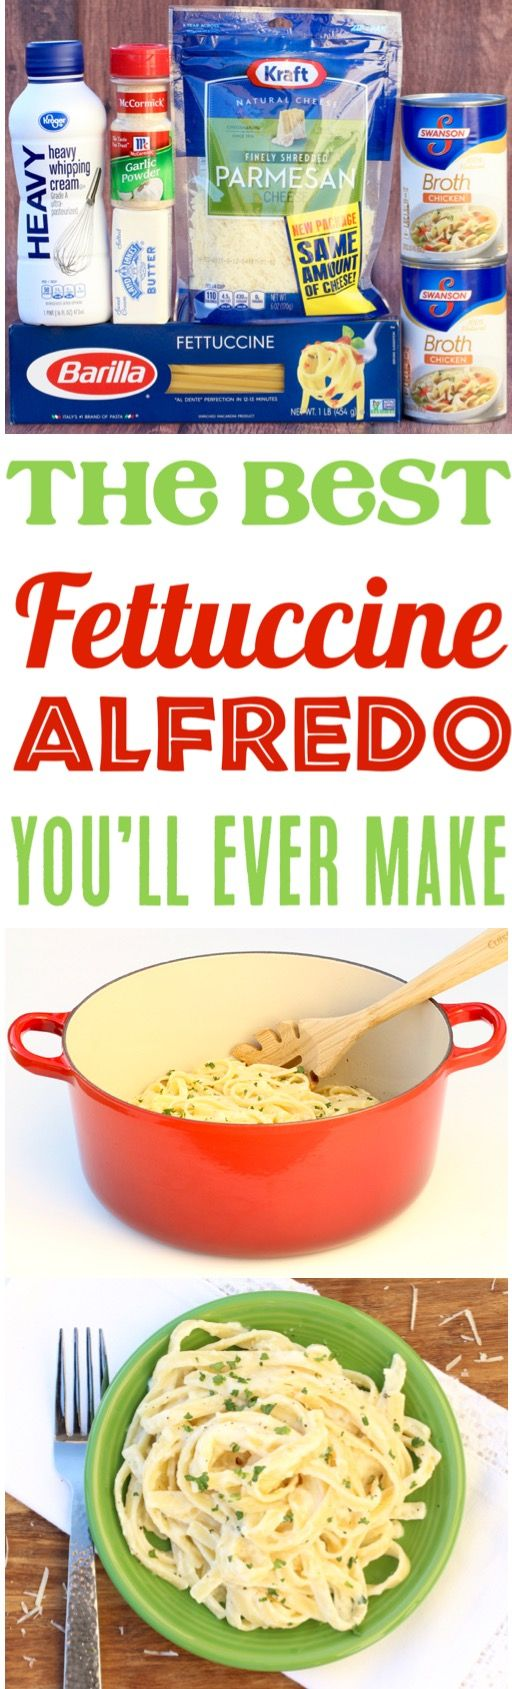 Fettucini Alfredo Recipe Easy Olive Garden Copycat One Pot Dinner!  The rich and delicious homemade sauce sends it over the top... add it to your menu this week!